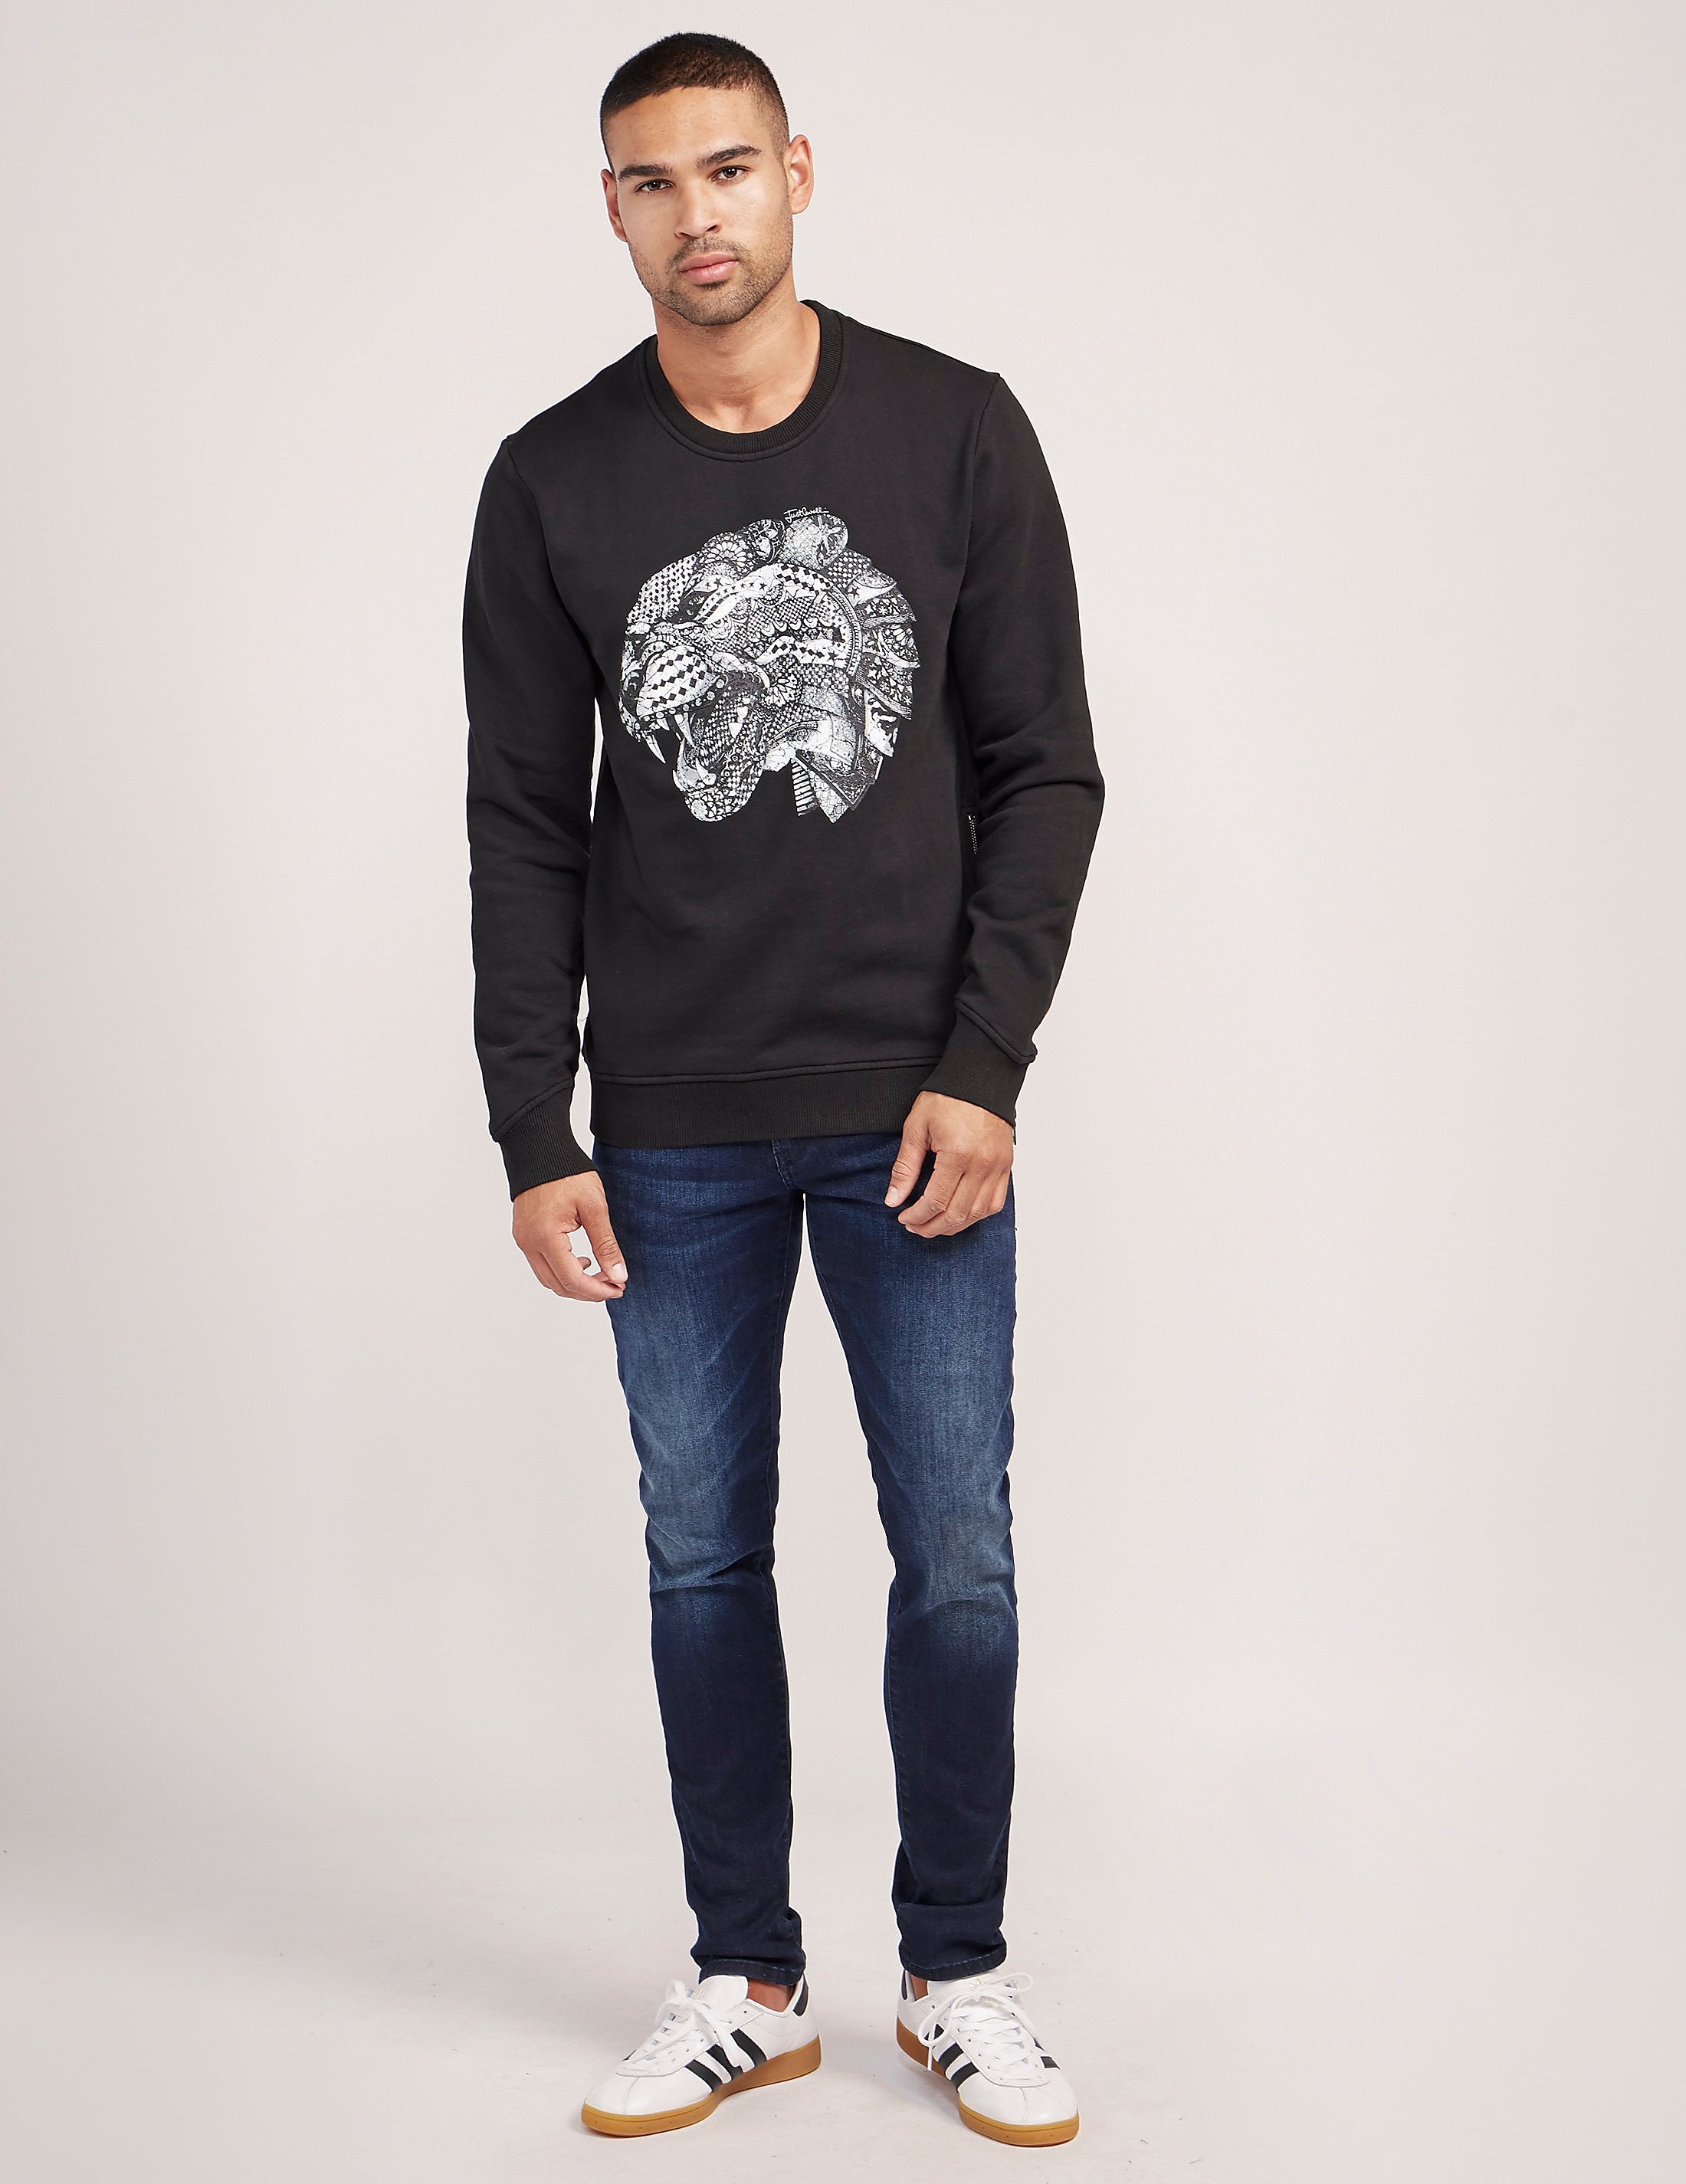 Just Cavalli Tigerhead Sweatshirt